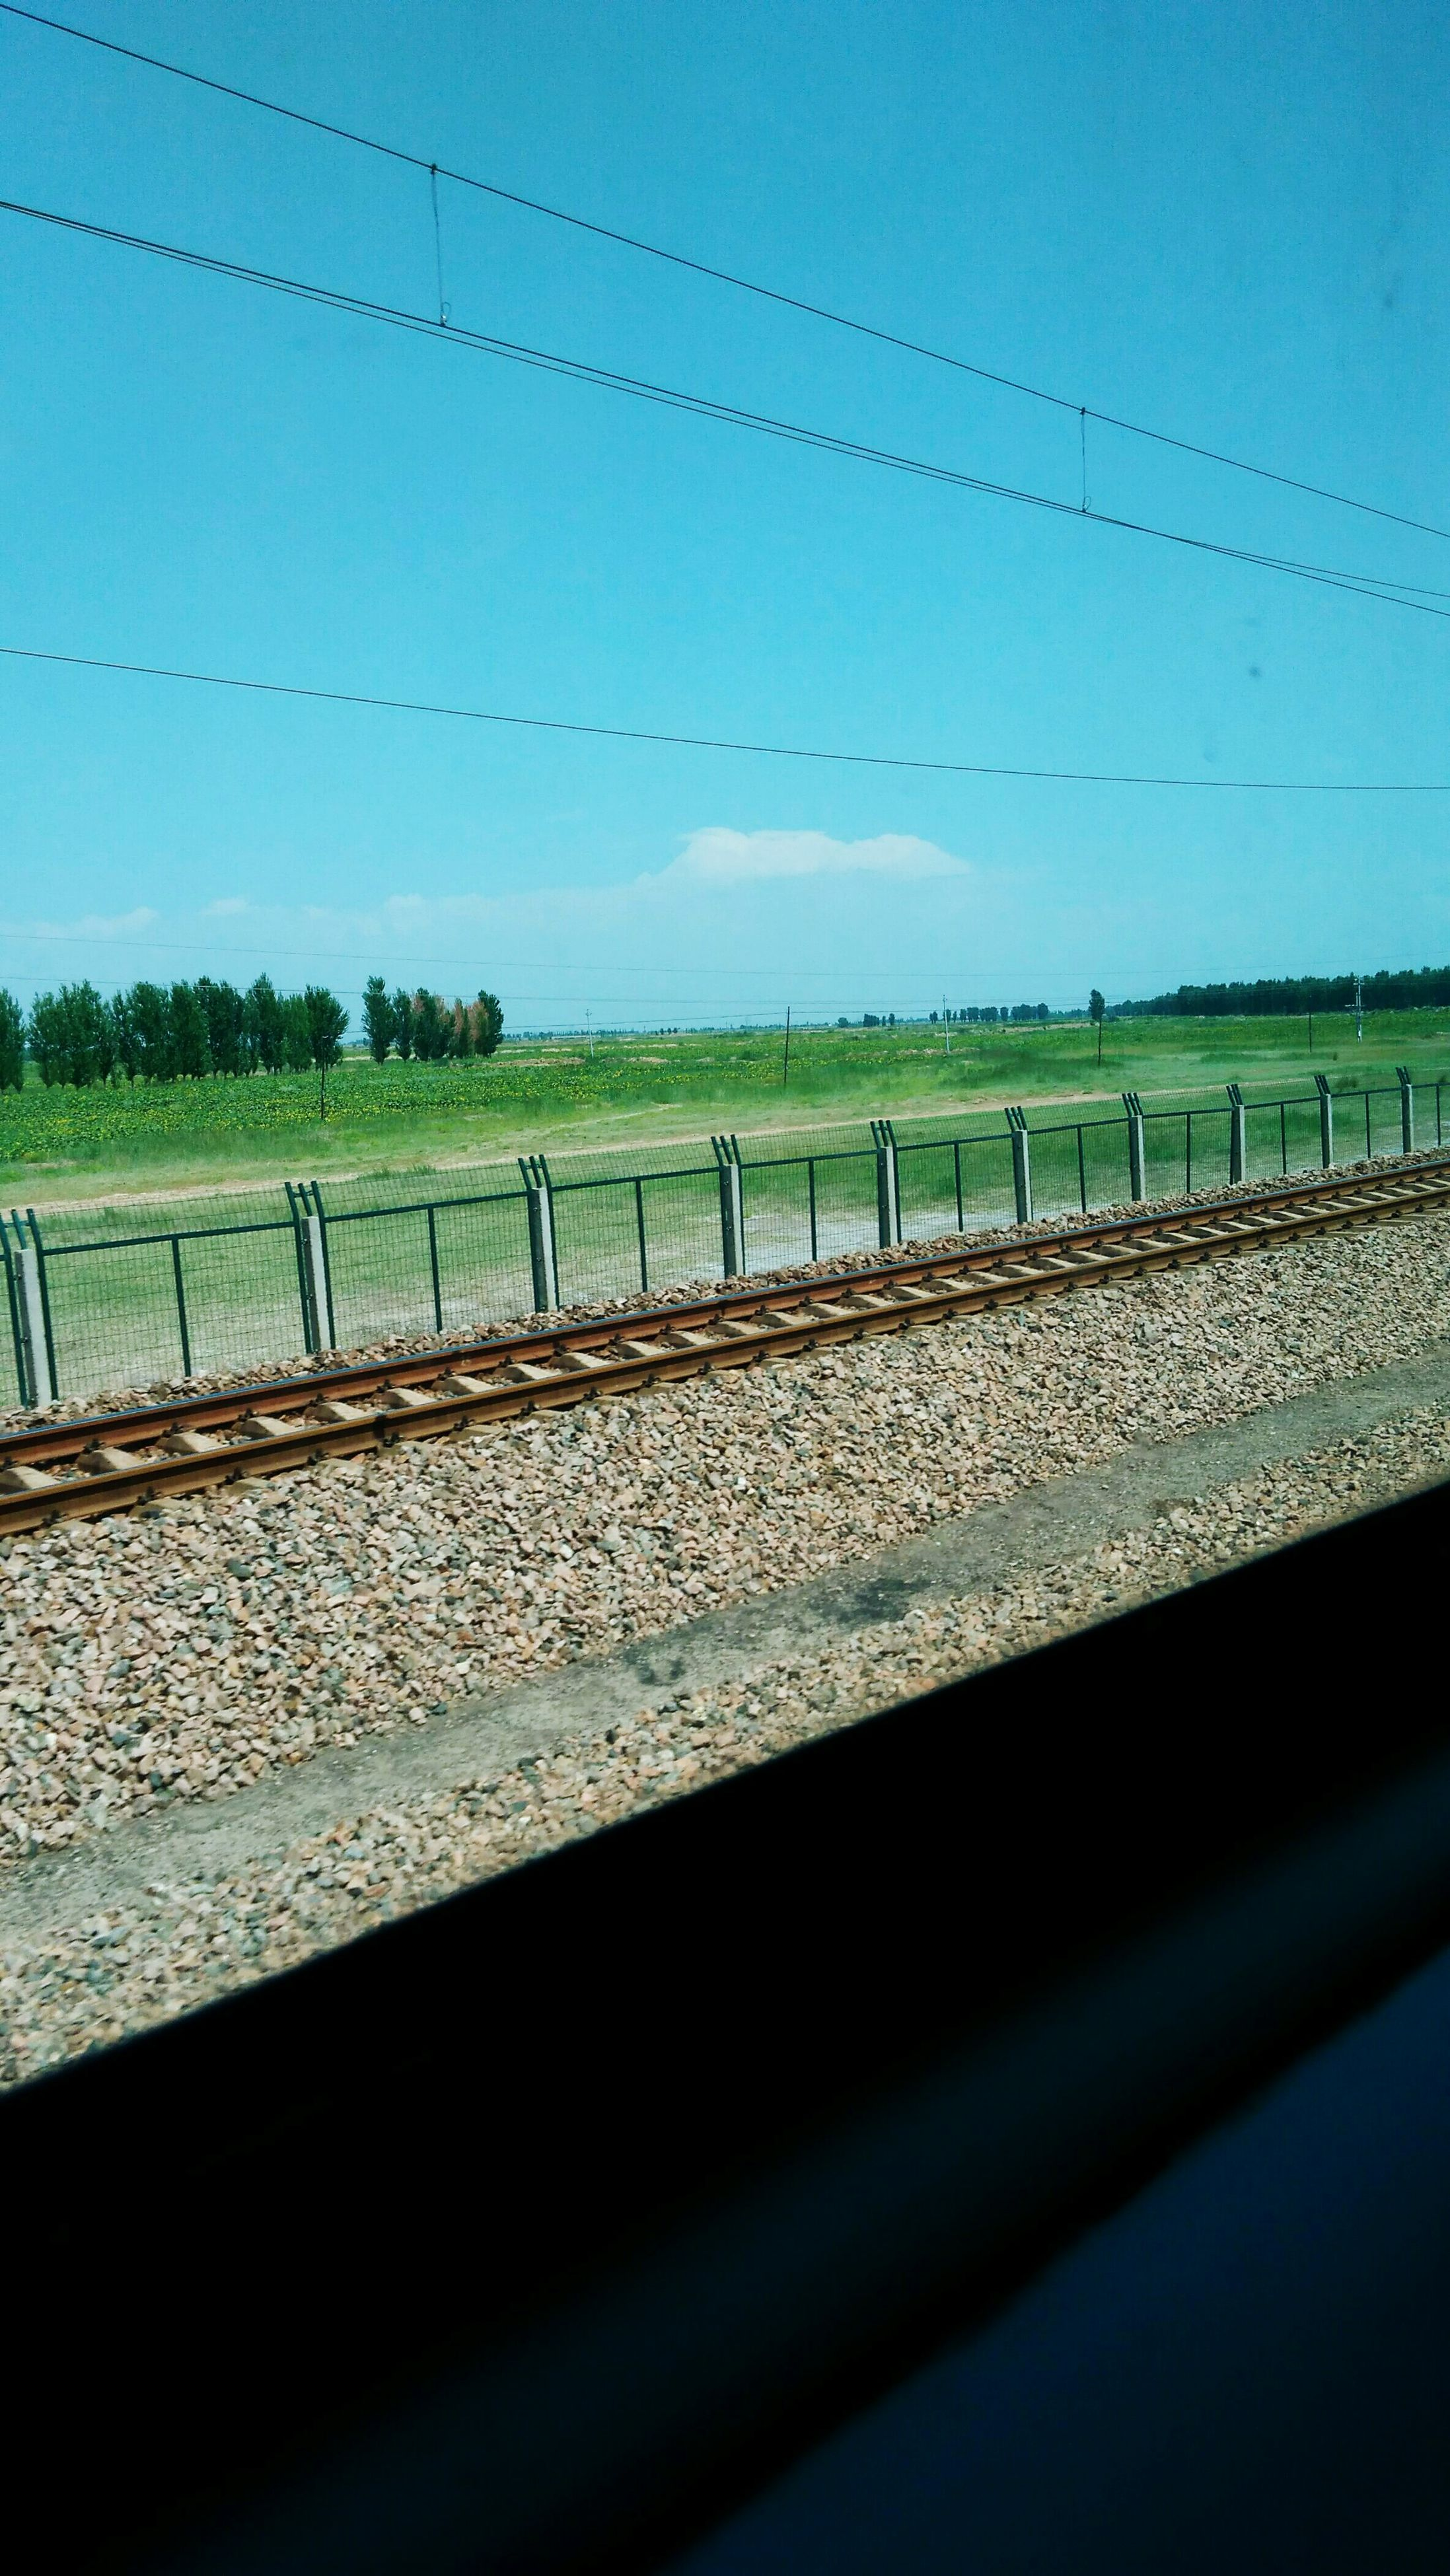 clear sky, railroad track, rail transportation, fence, transportation, animal themes, sky, connection, public transportation, blue, no people, wildlife, in a row, day, outdoors, power line, metal, bird, railroad station